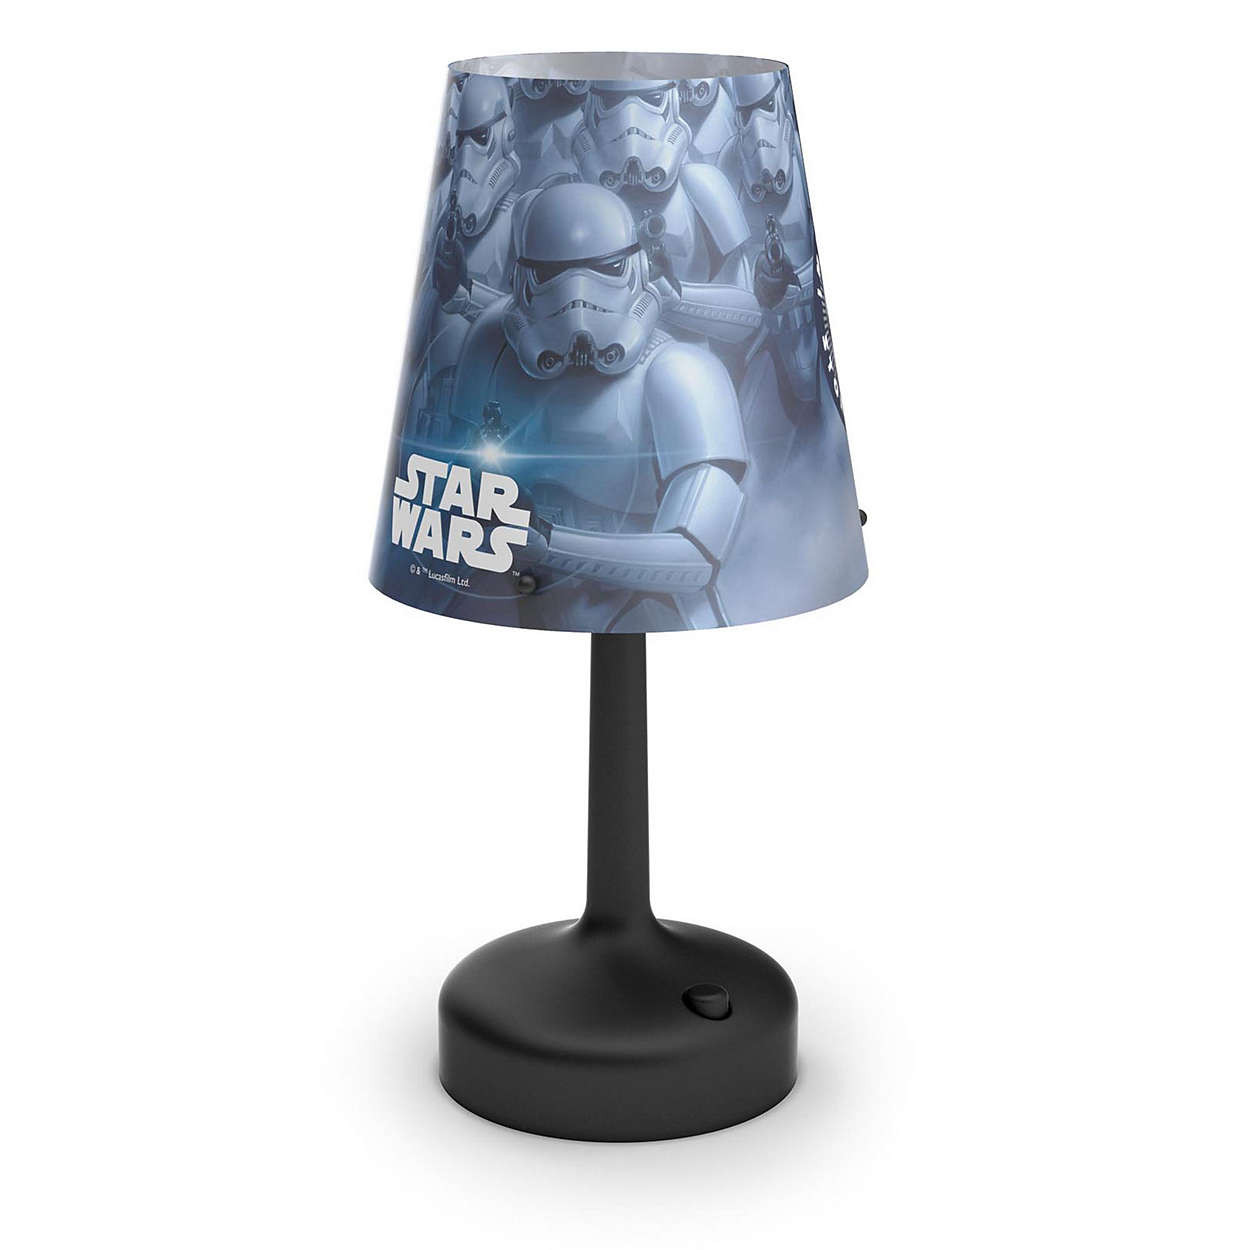 Best ideas about Star Wars Desk Lamp . Save or Pin Table lamp Now.